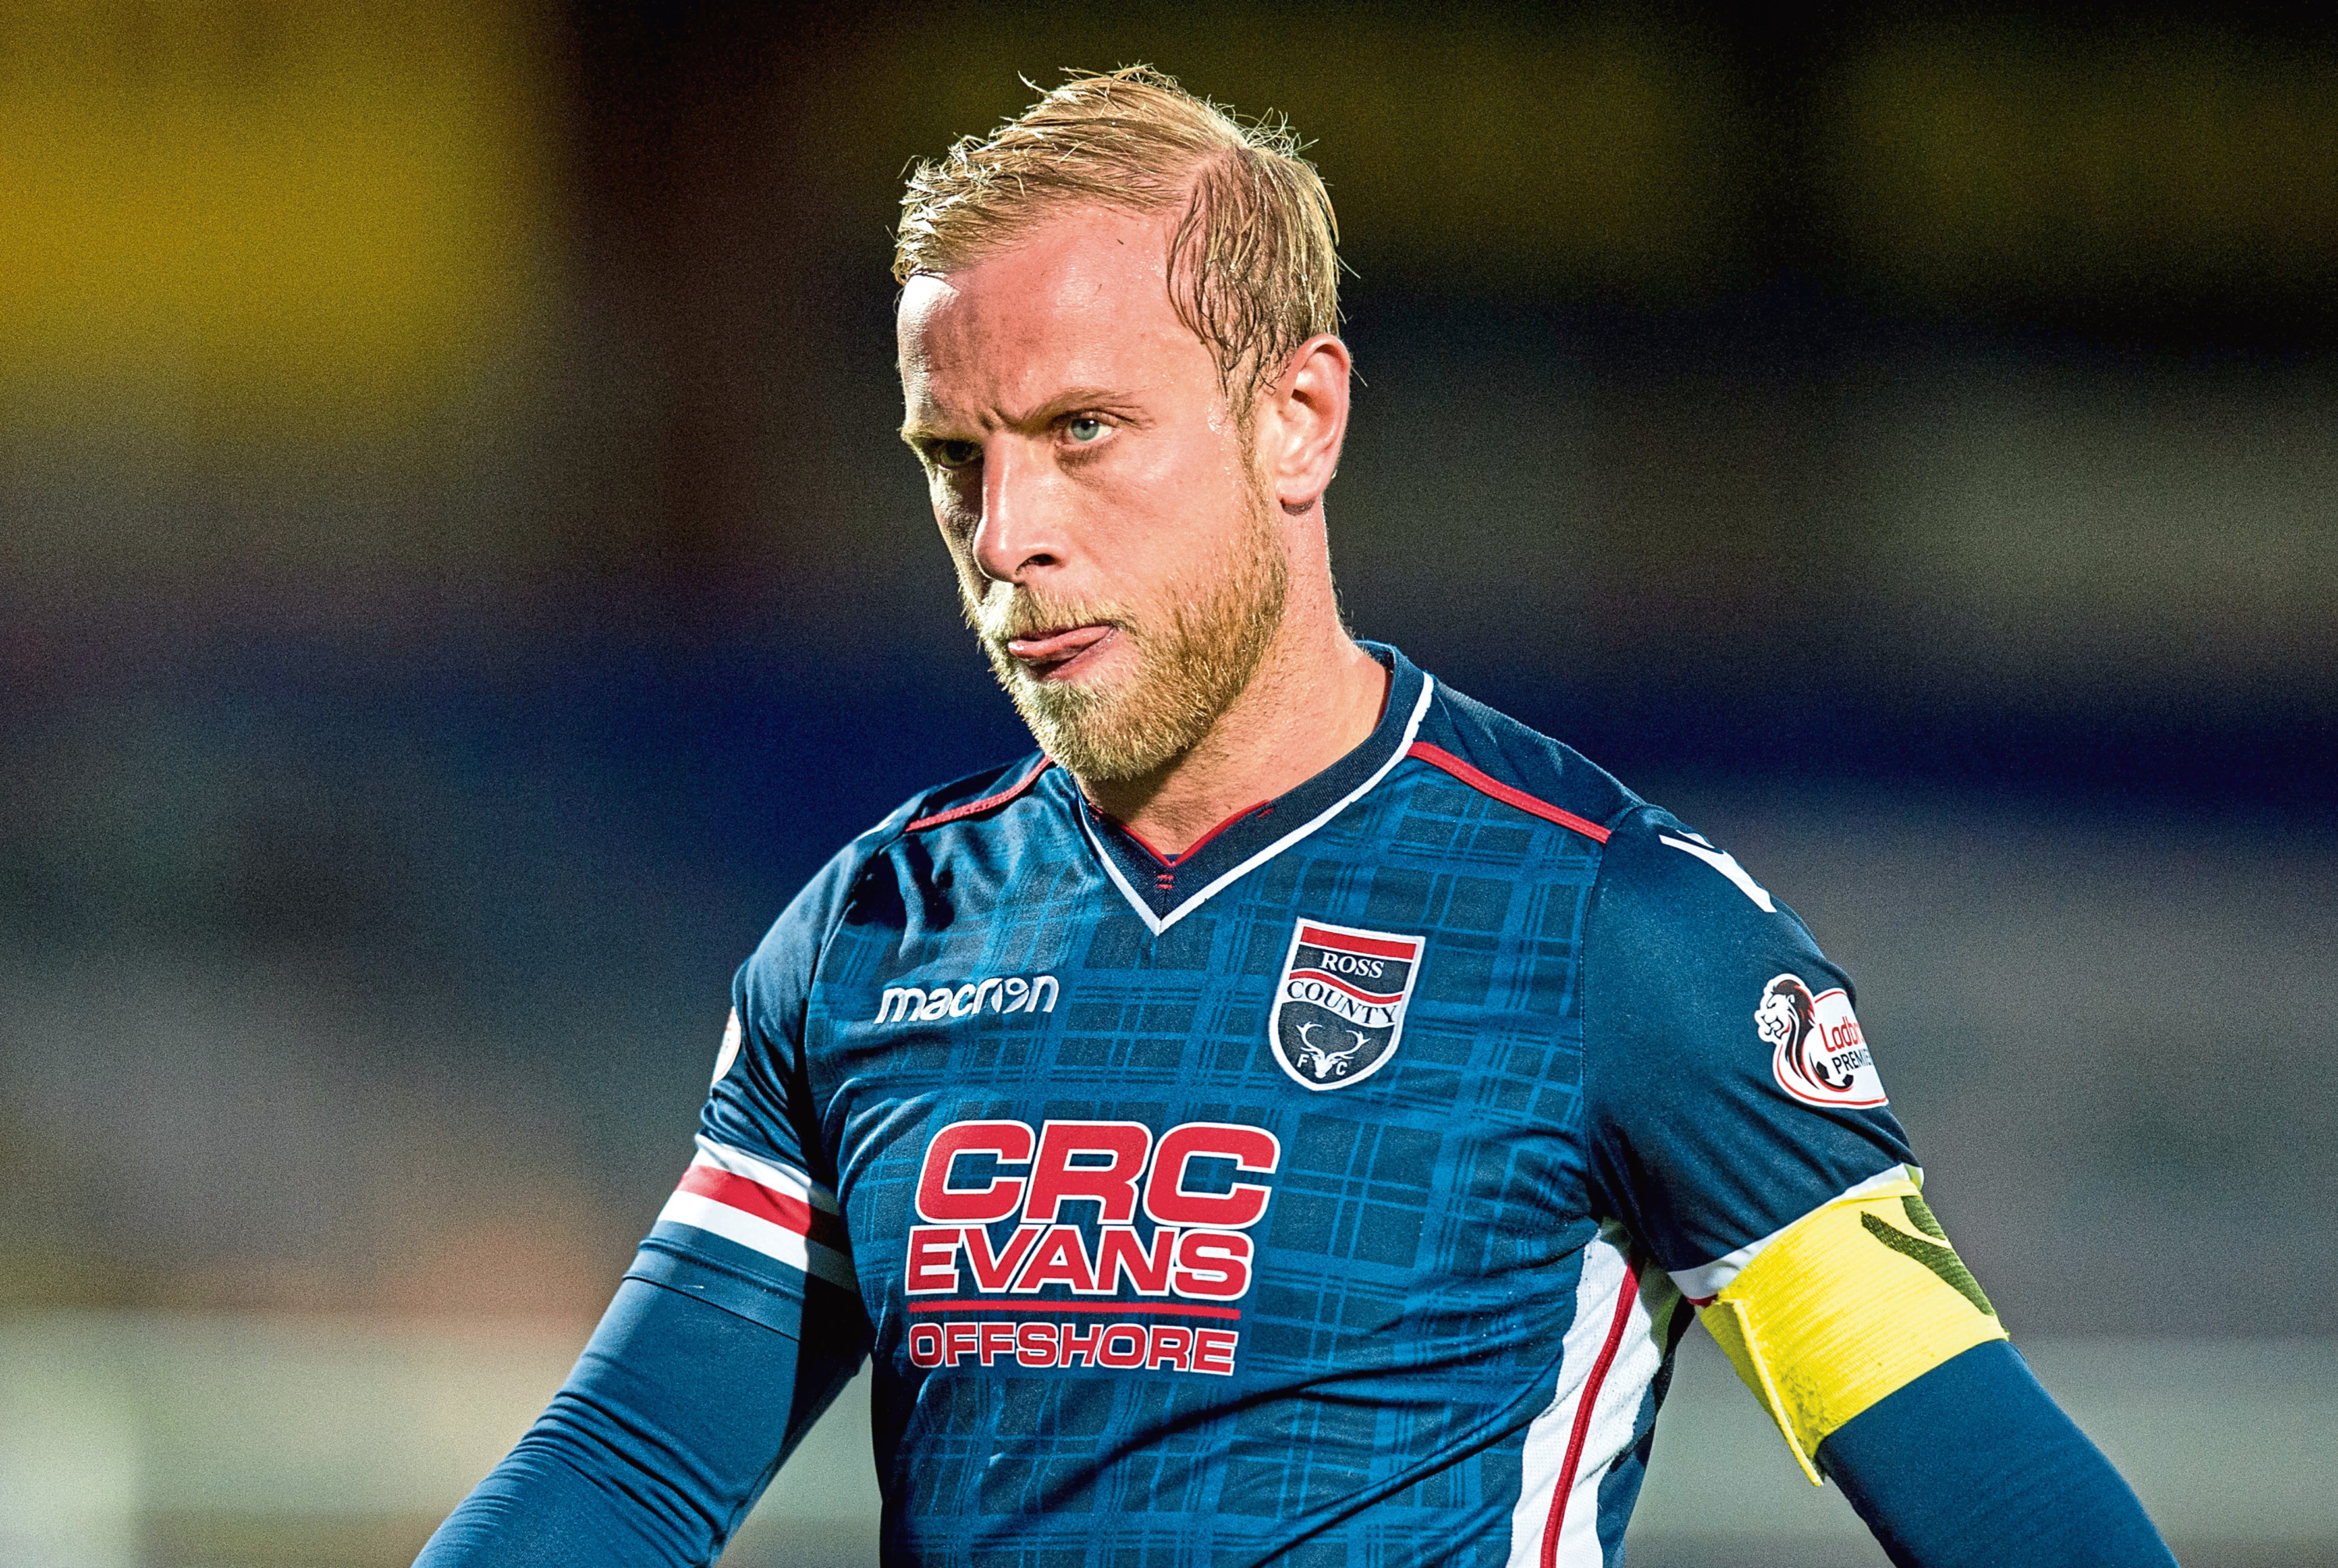 Andrew Davies in action for Ross County